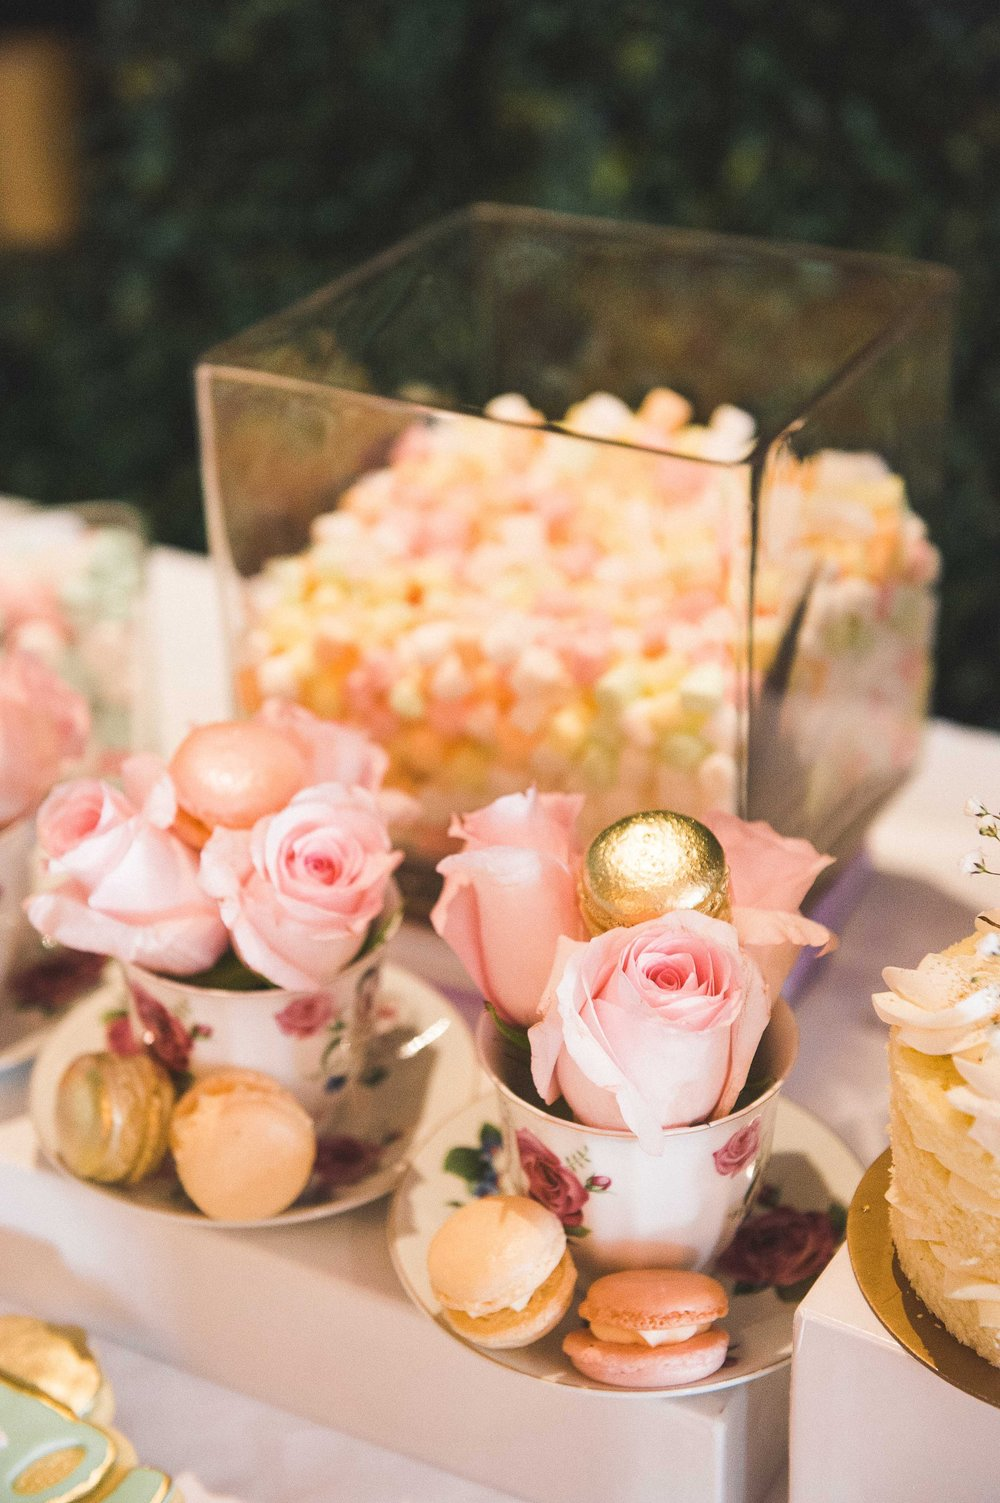 Bridal Shower  Events by Cece-0009.jpg